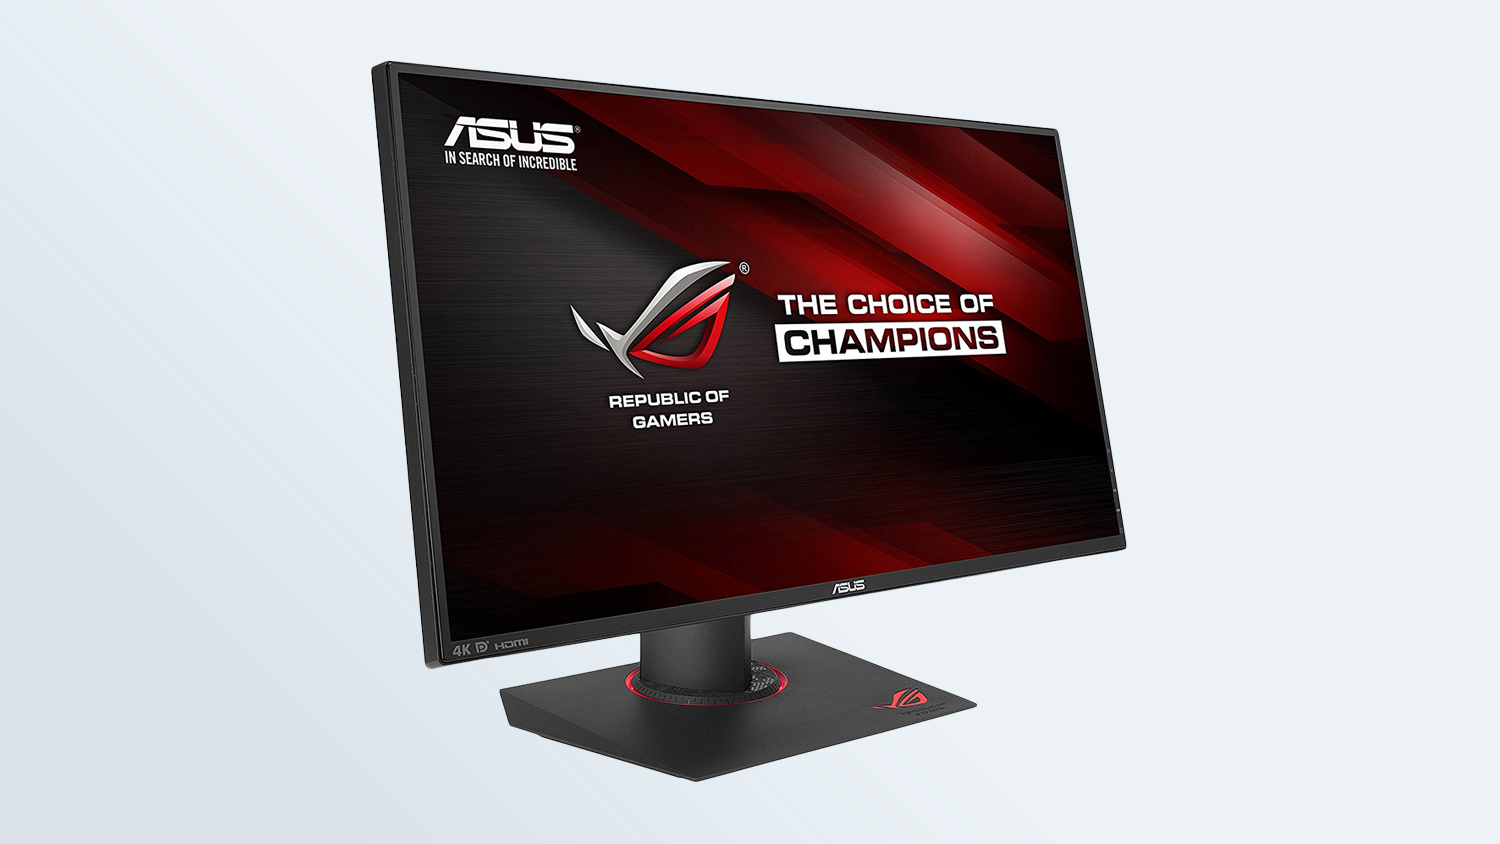 Best gaming monitors: Asus ROG Swift PG27A